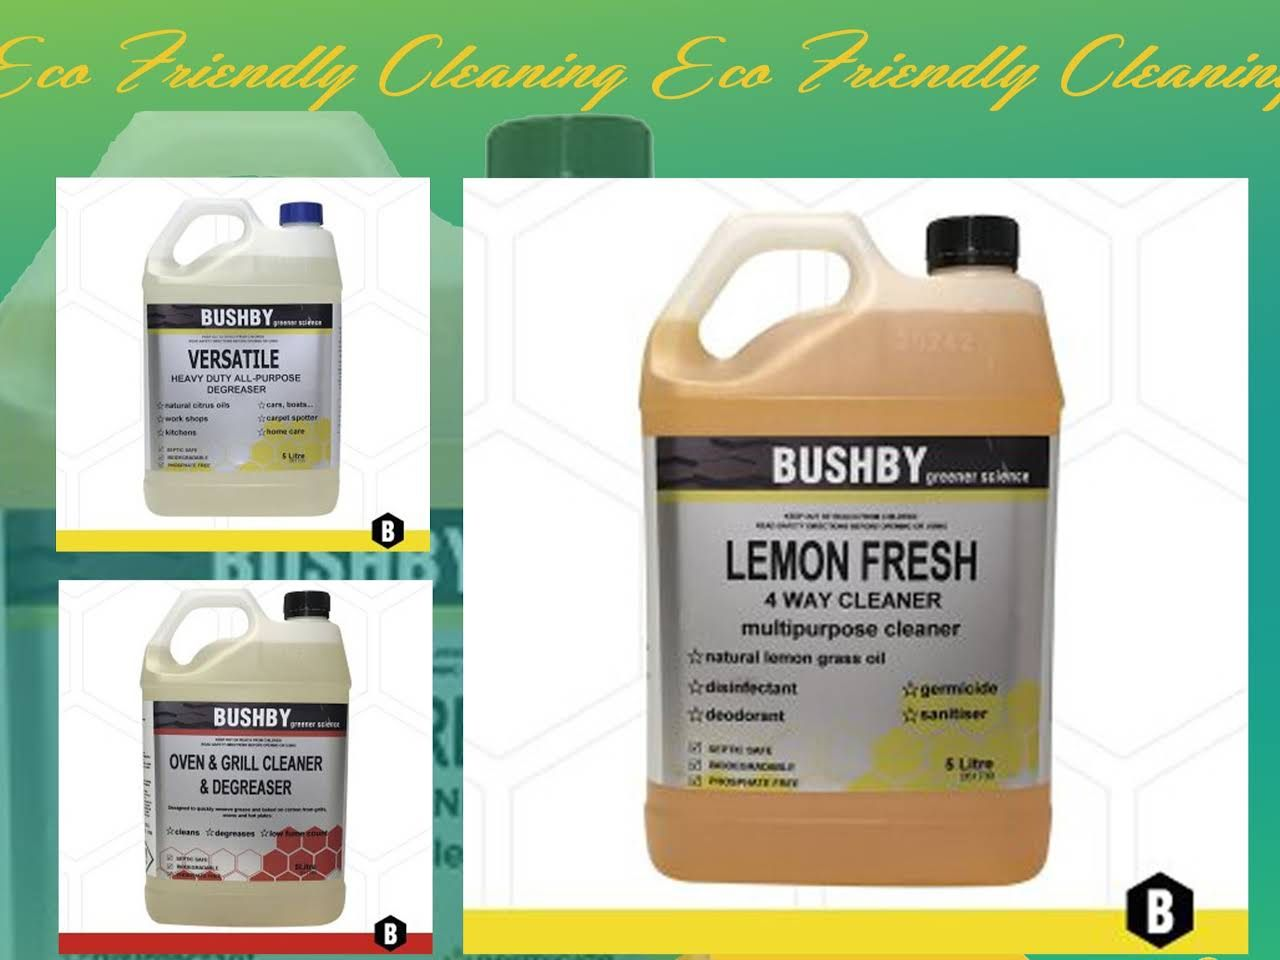 Ezy eco cleaning provides the ecofriendly cleaning products in